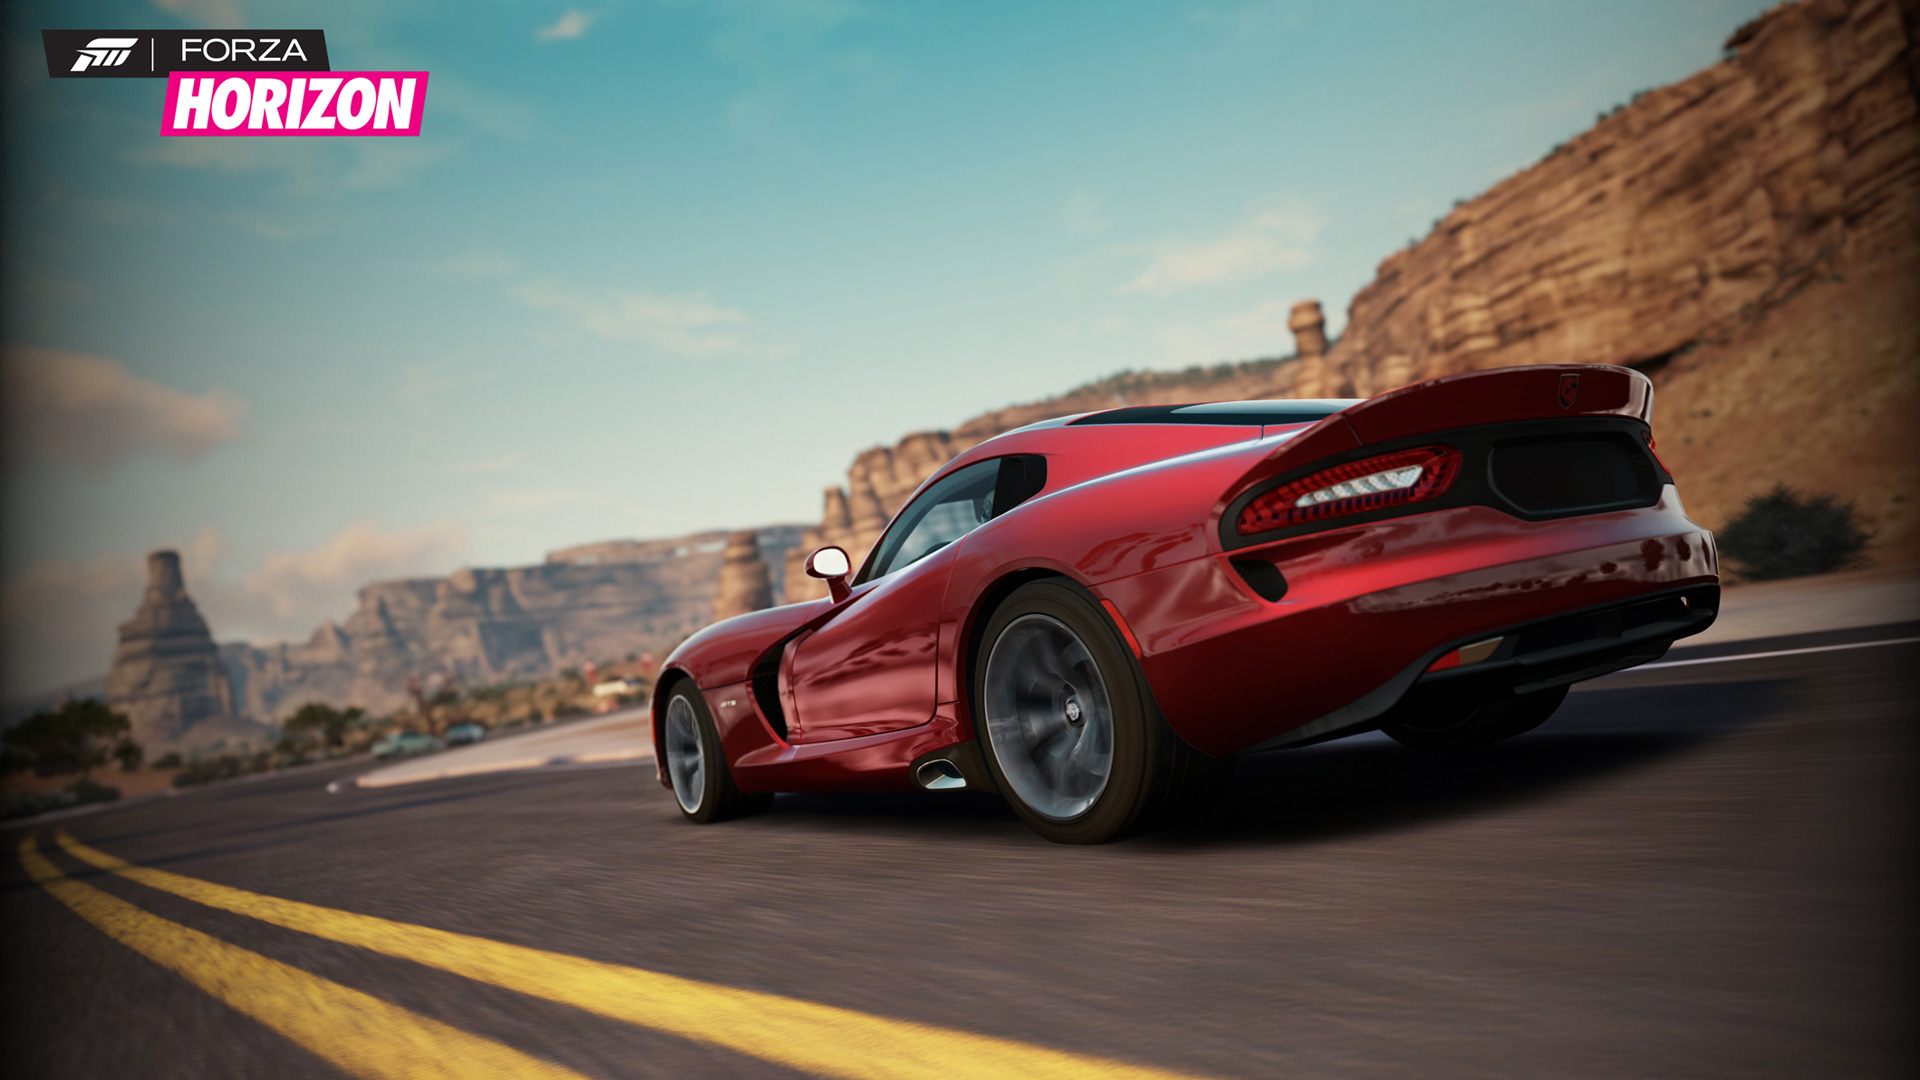 Forza Horizon Wallpaper in 1920x1080